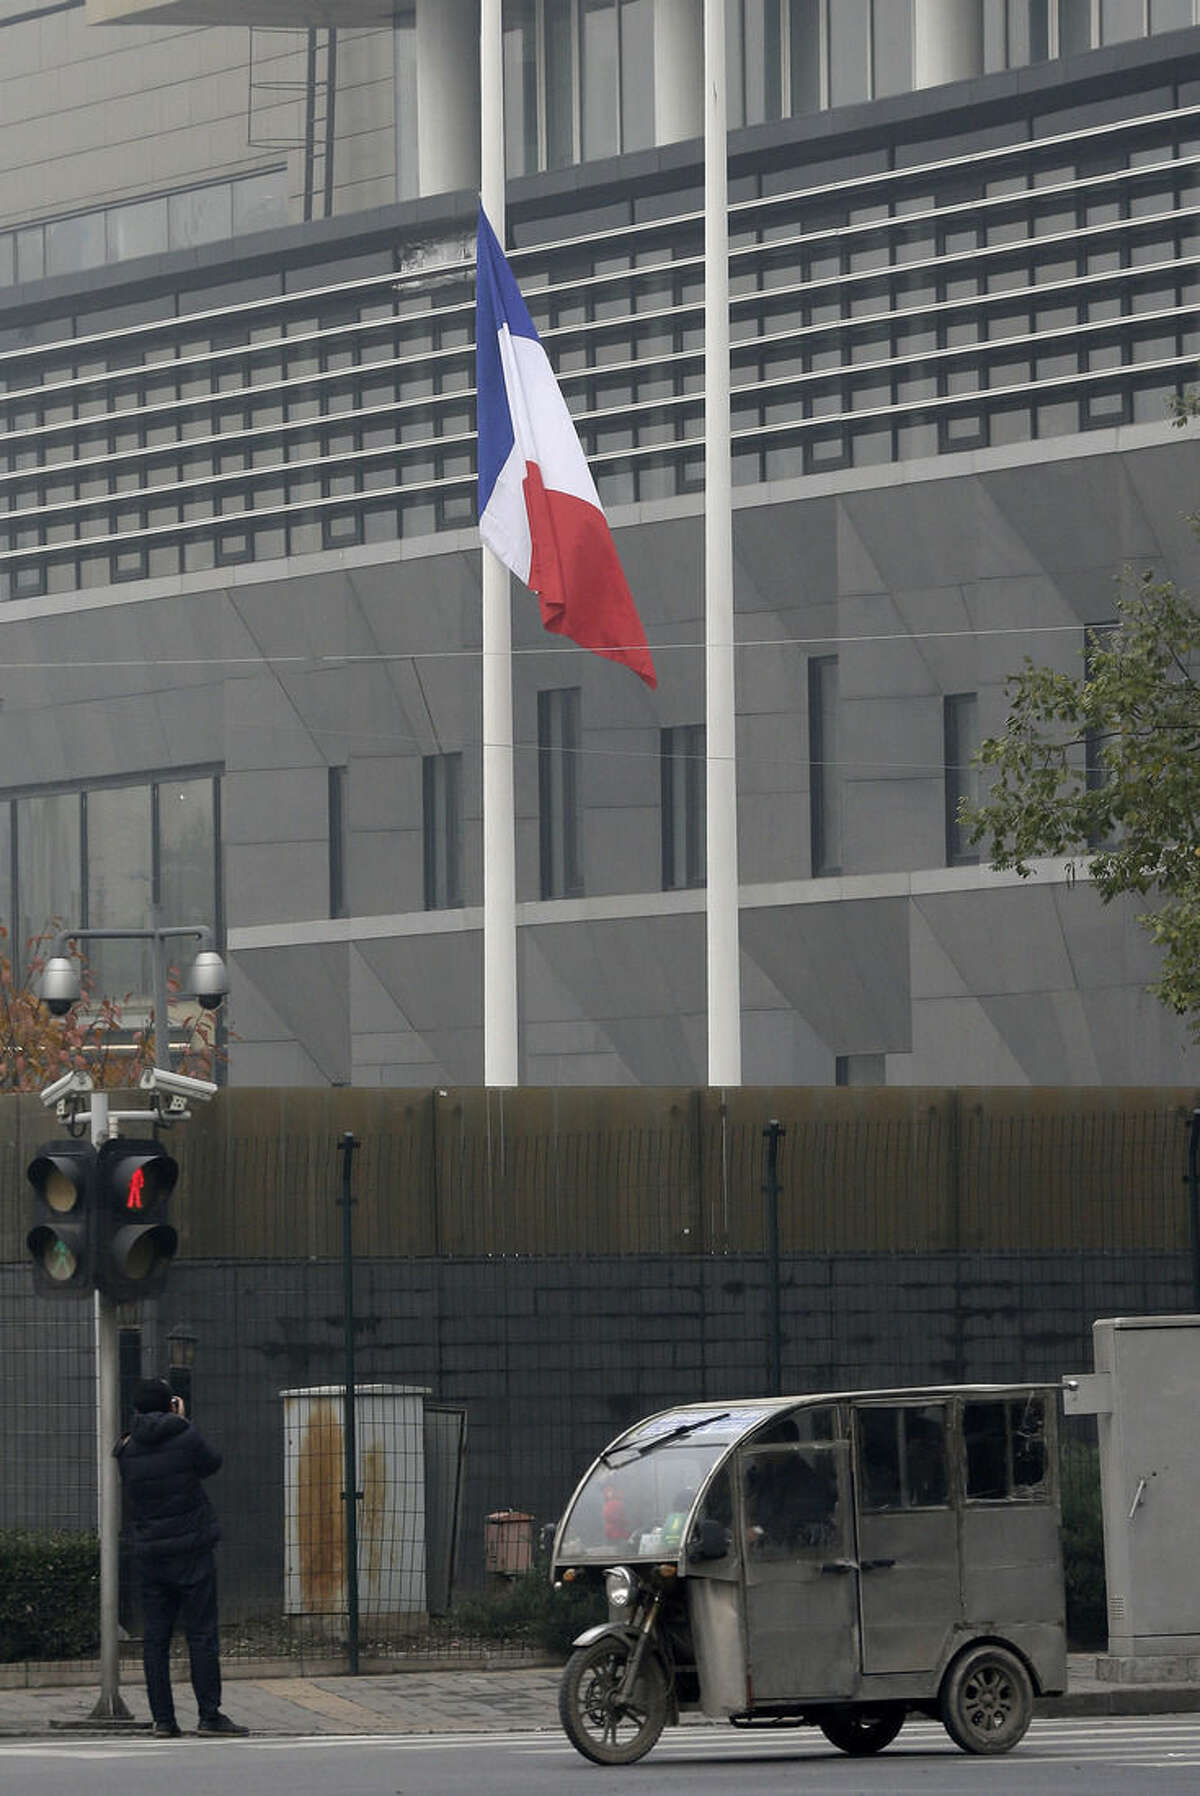 A photographer takes picture of a French national flag fluttering at half-mast to mourn for the victims killed in the Friday's attacks in Paris, France, at the French Embassy compound in Beijing, China, Saturday, Nov. 14, 2015. Foreign Ministry spokesman Hong Lei says China is